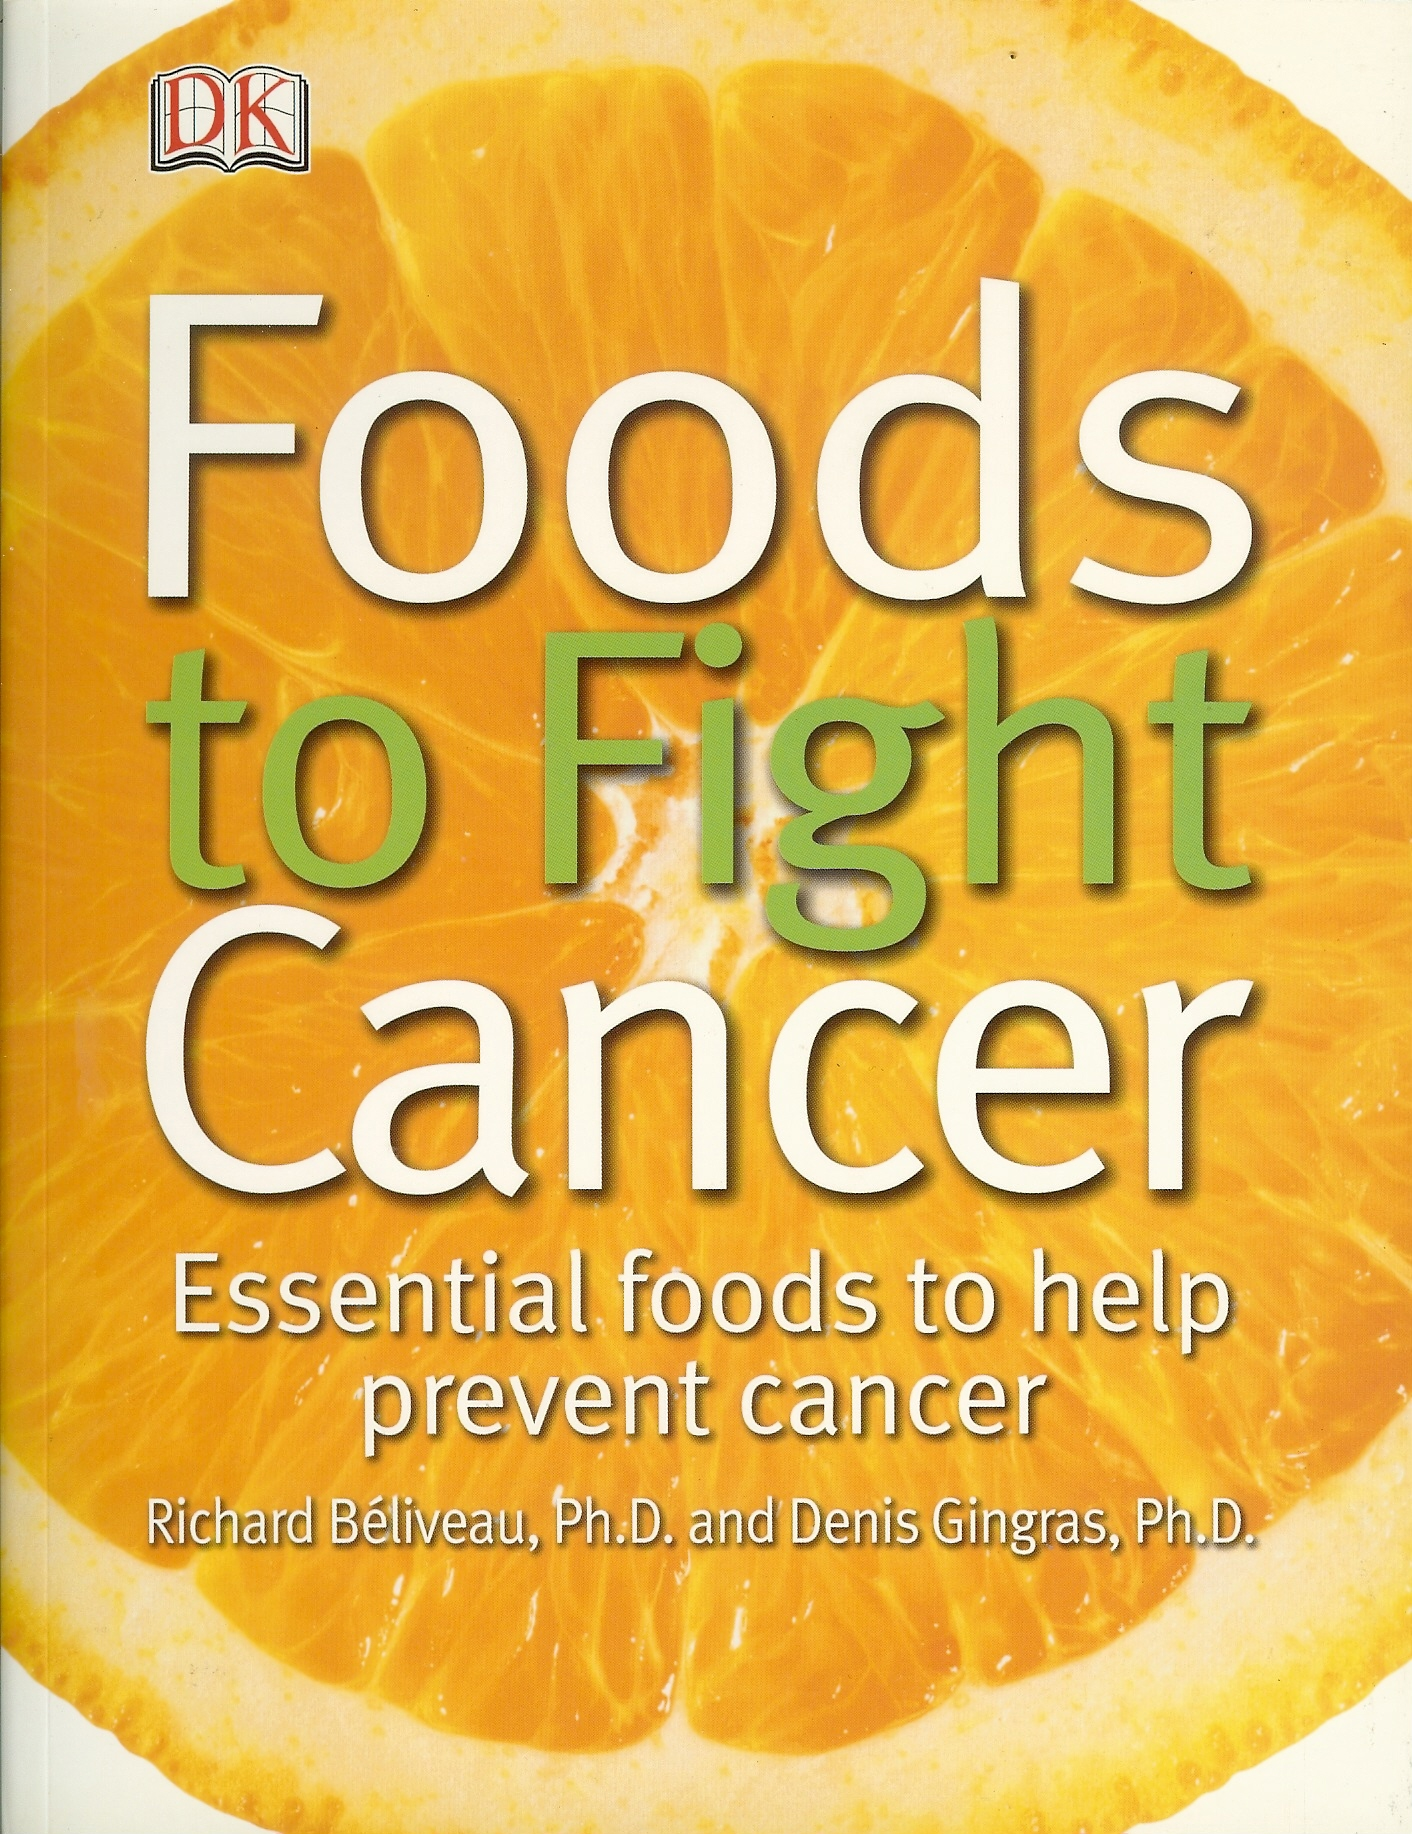 cancer prevention through macrobiotics essay